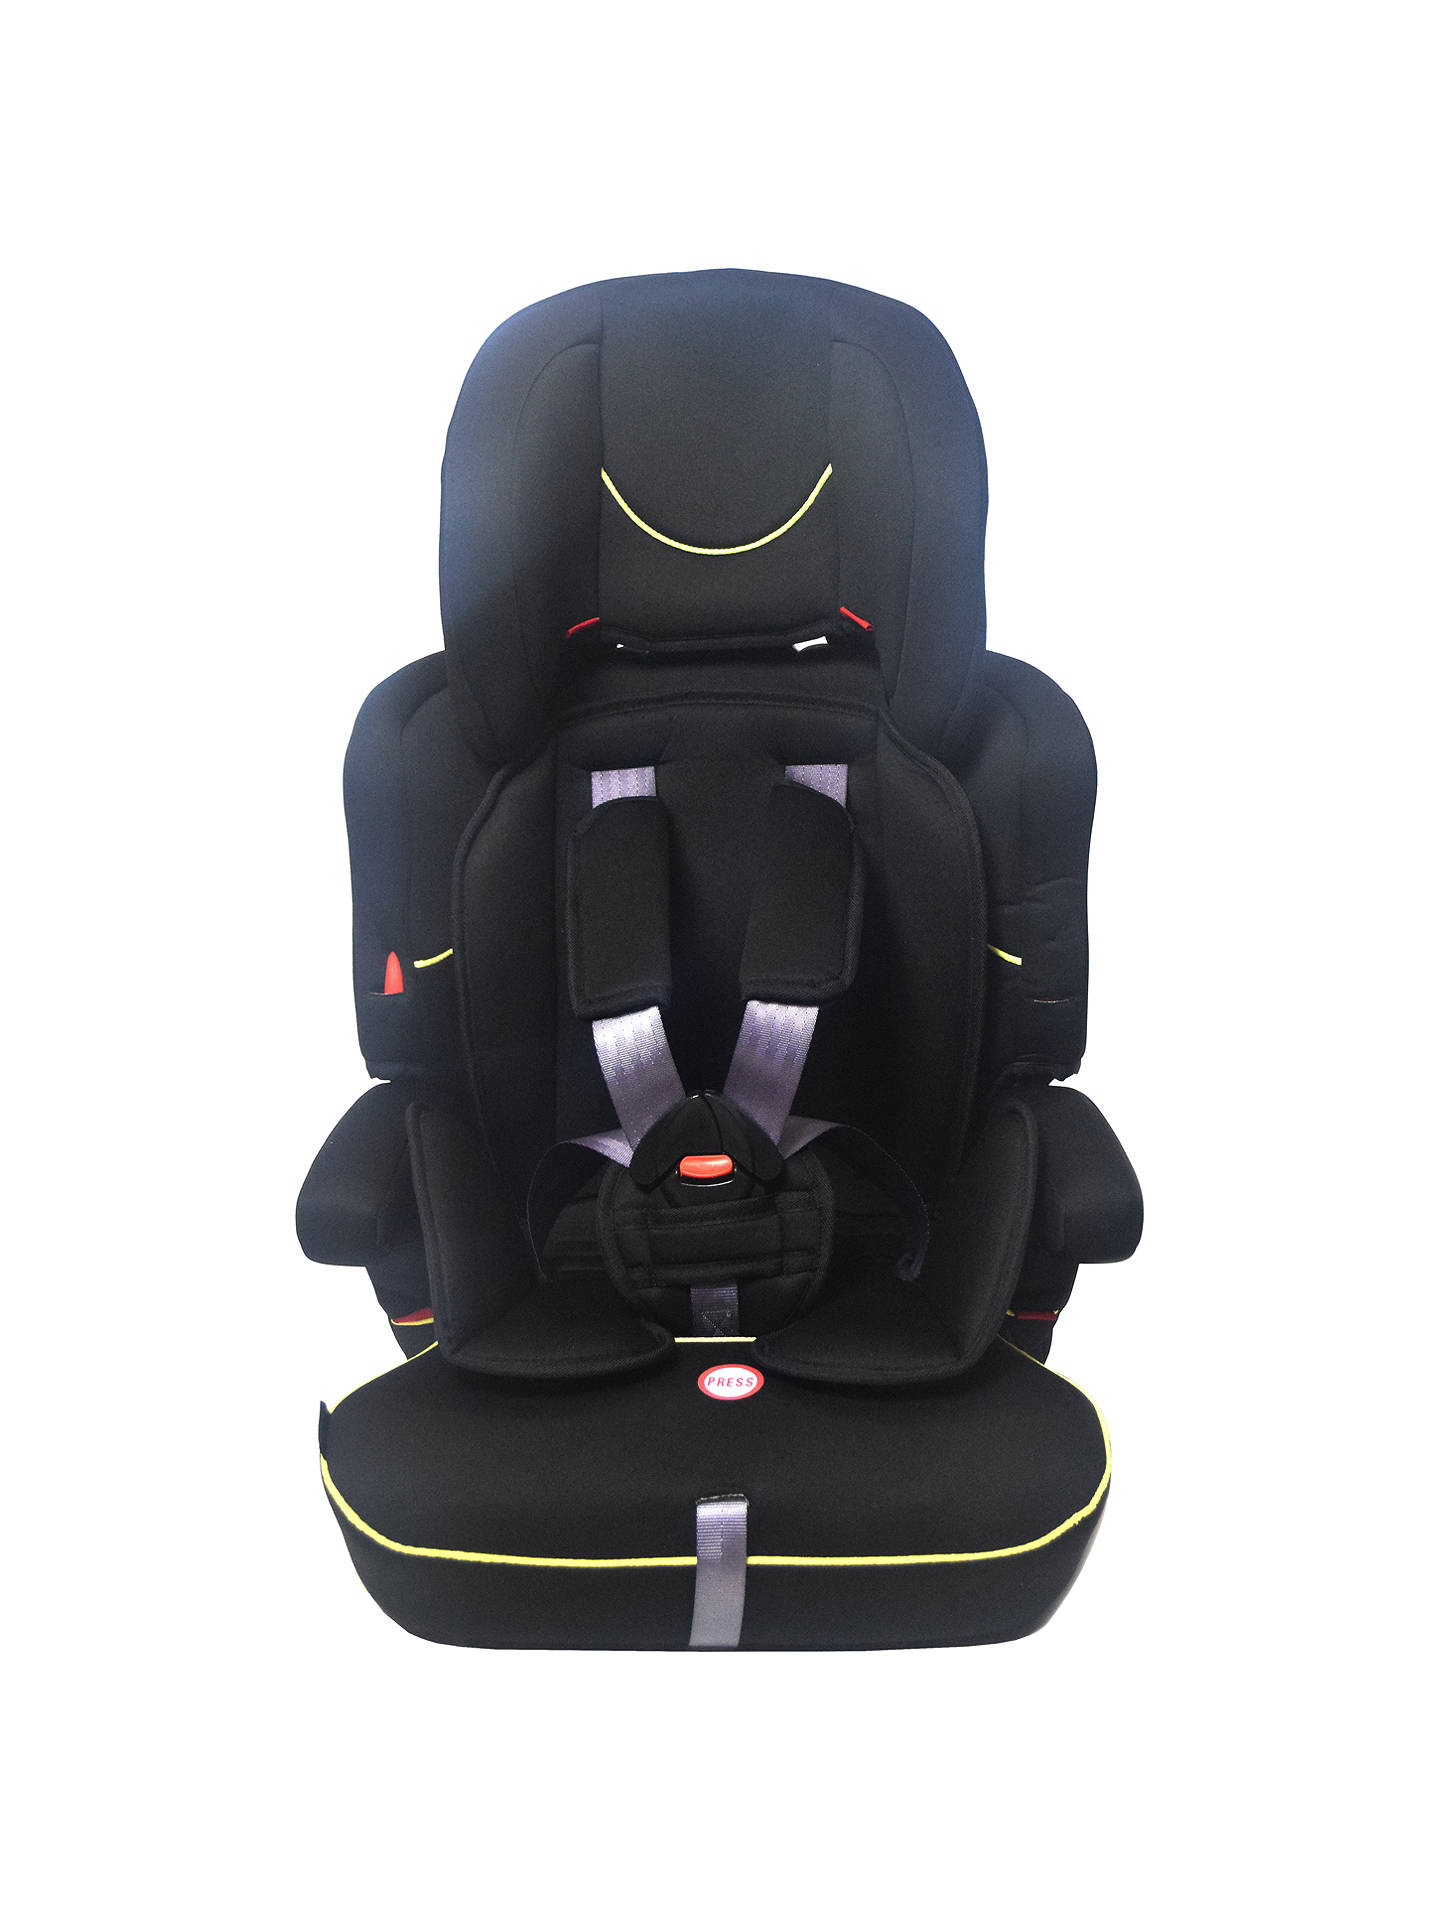 6c264b462e70 John Lewis & Partners Group 1/2/3 Car Seat, Black at John Lewis ...